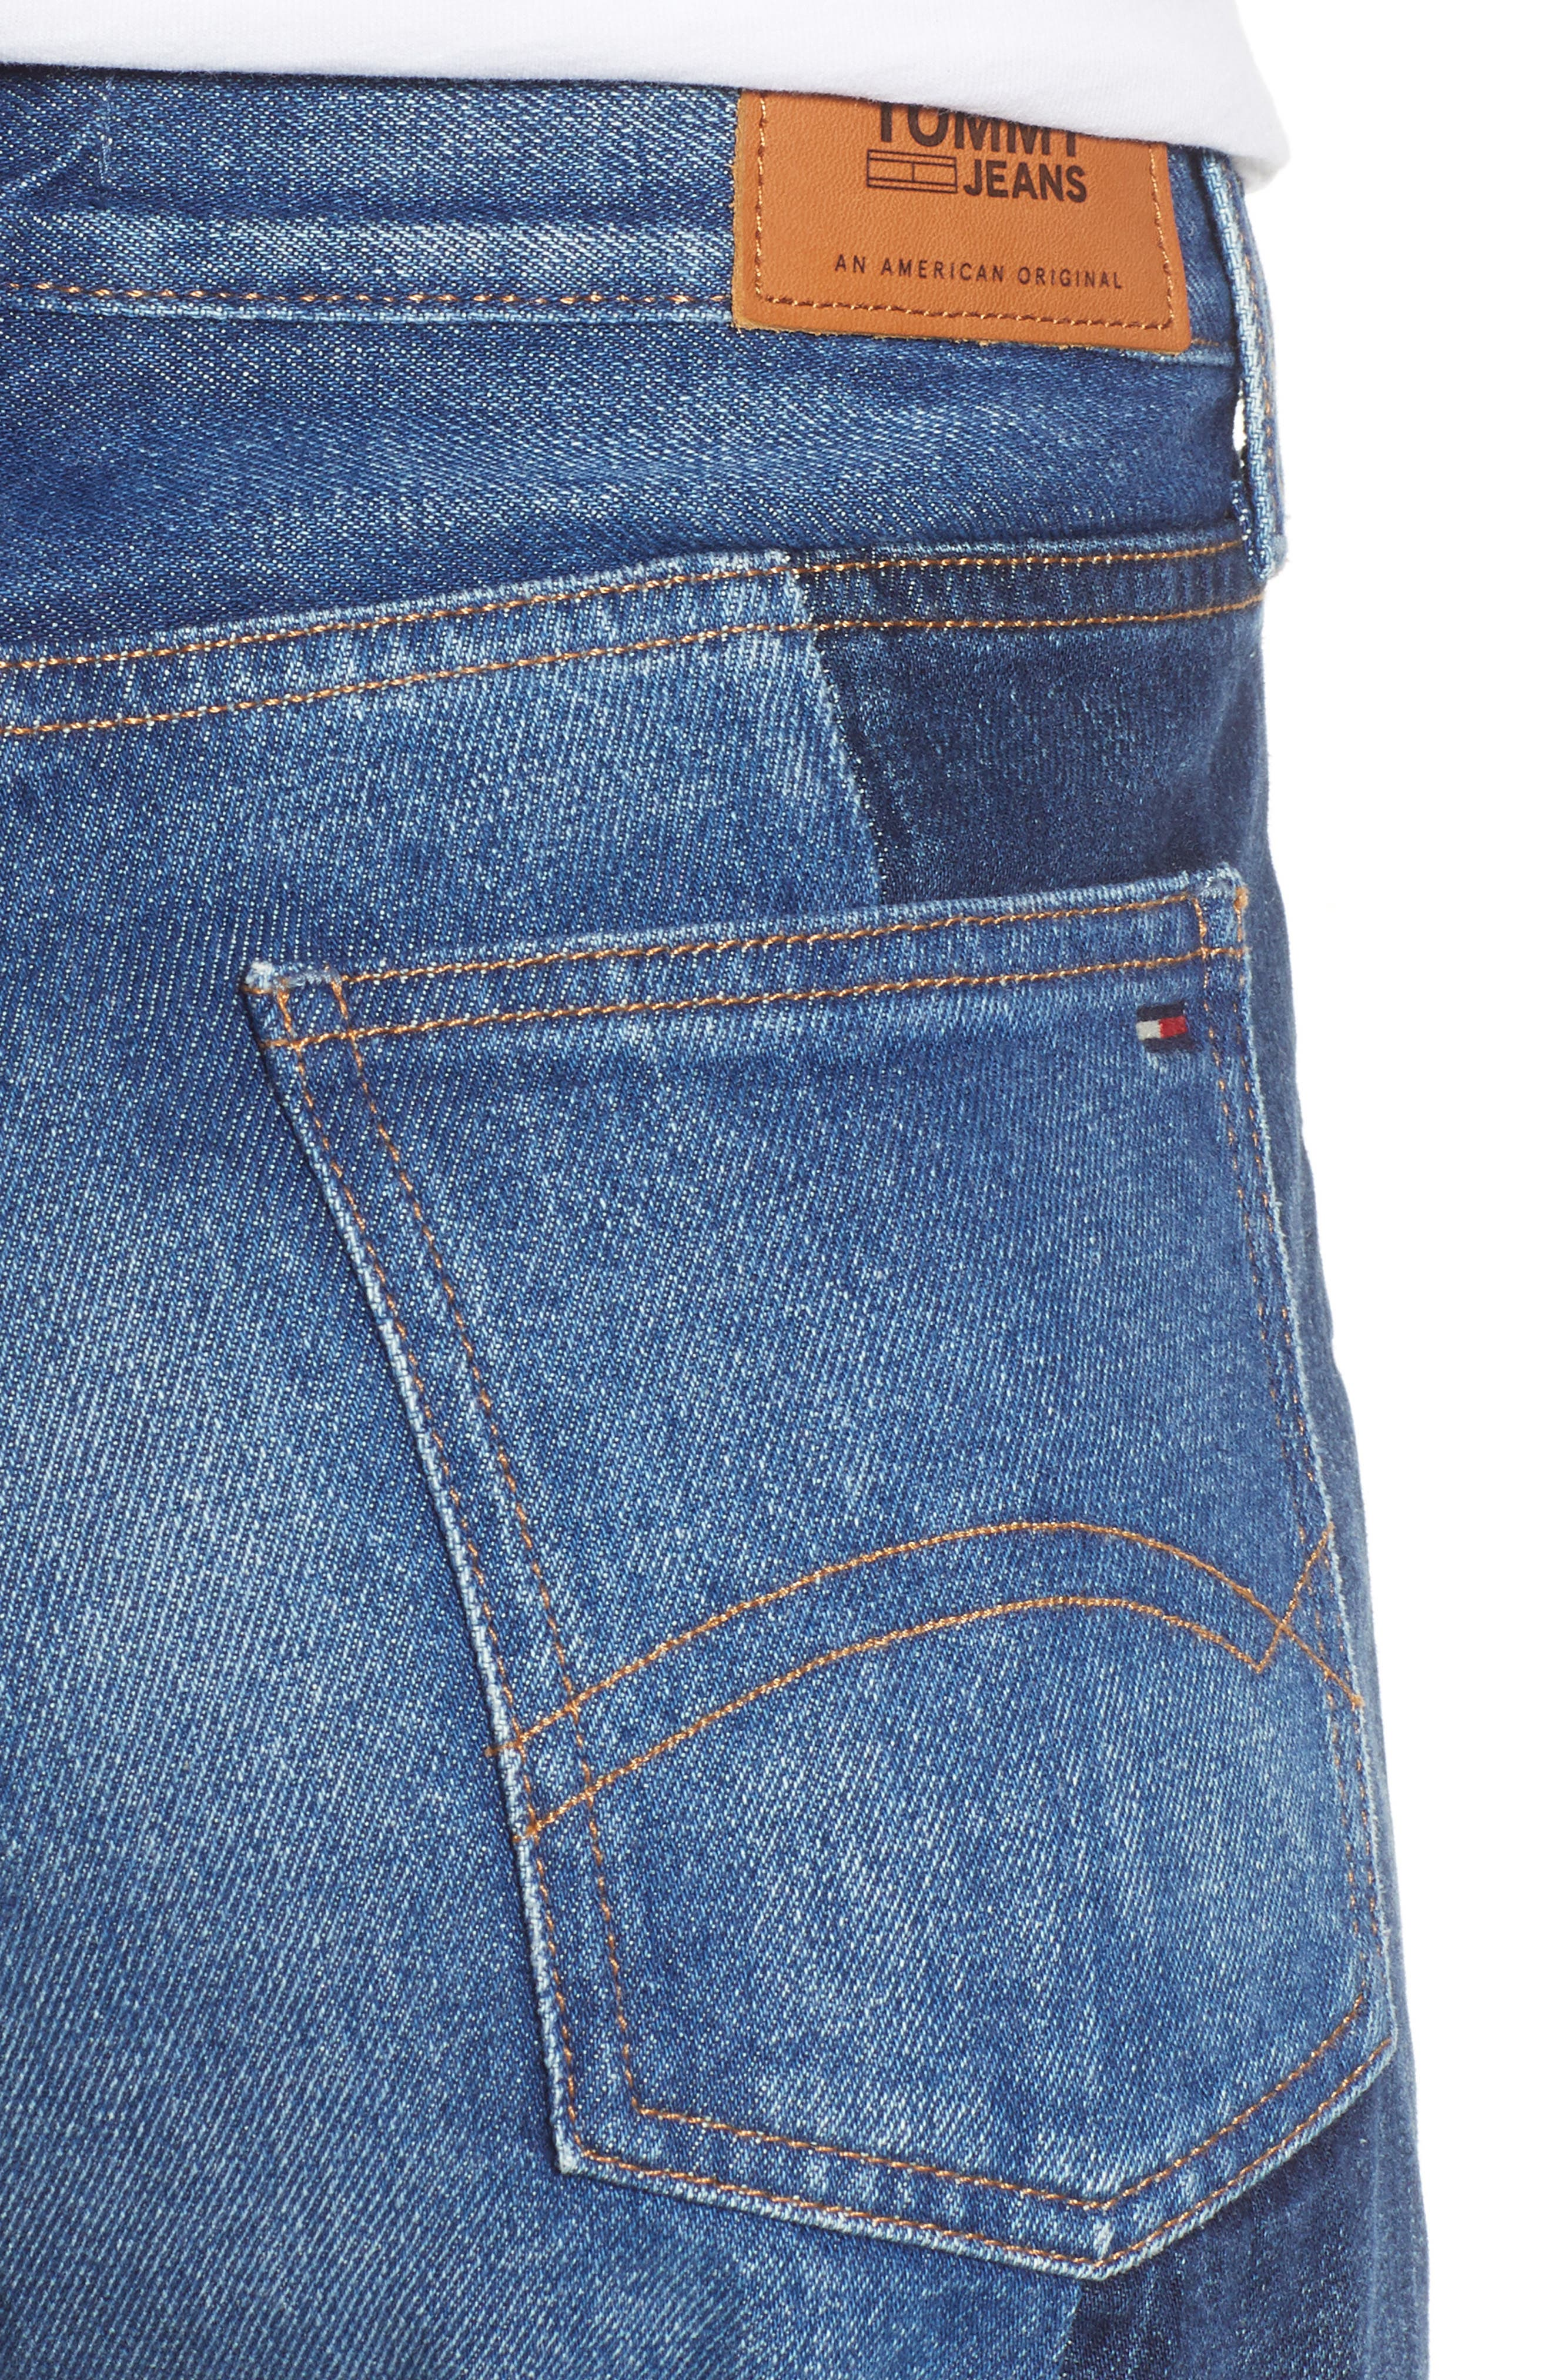 Izzy Paneled Slim Ankle Jeans,                             Alternate thumbnail 4, color,                             TOMMY JEAN NEW COMBO